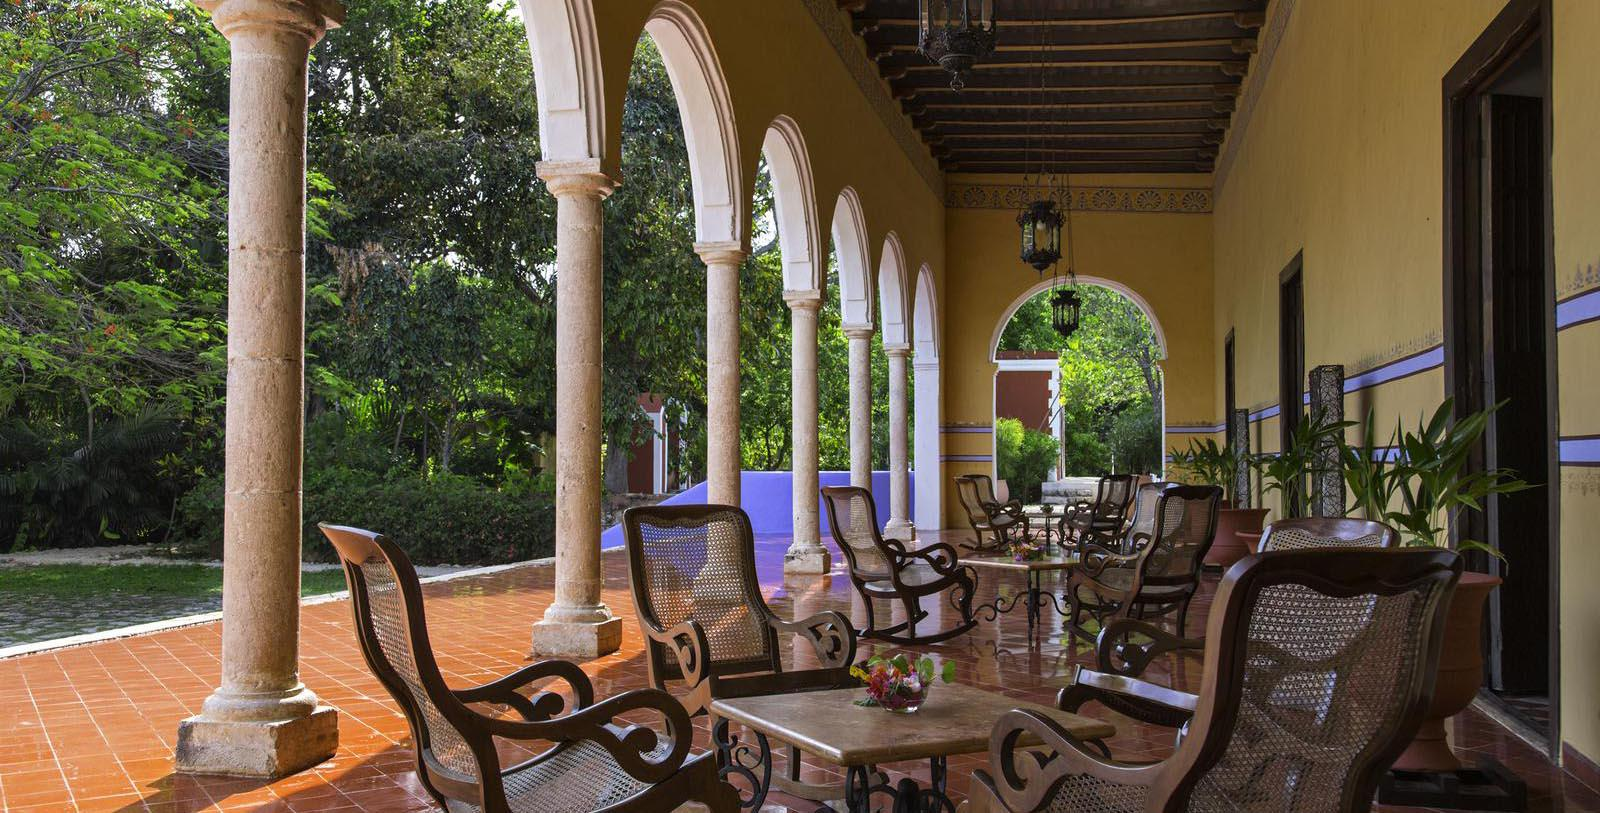 Discover the Spanish Colonial architecture of this terrific historic destination.